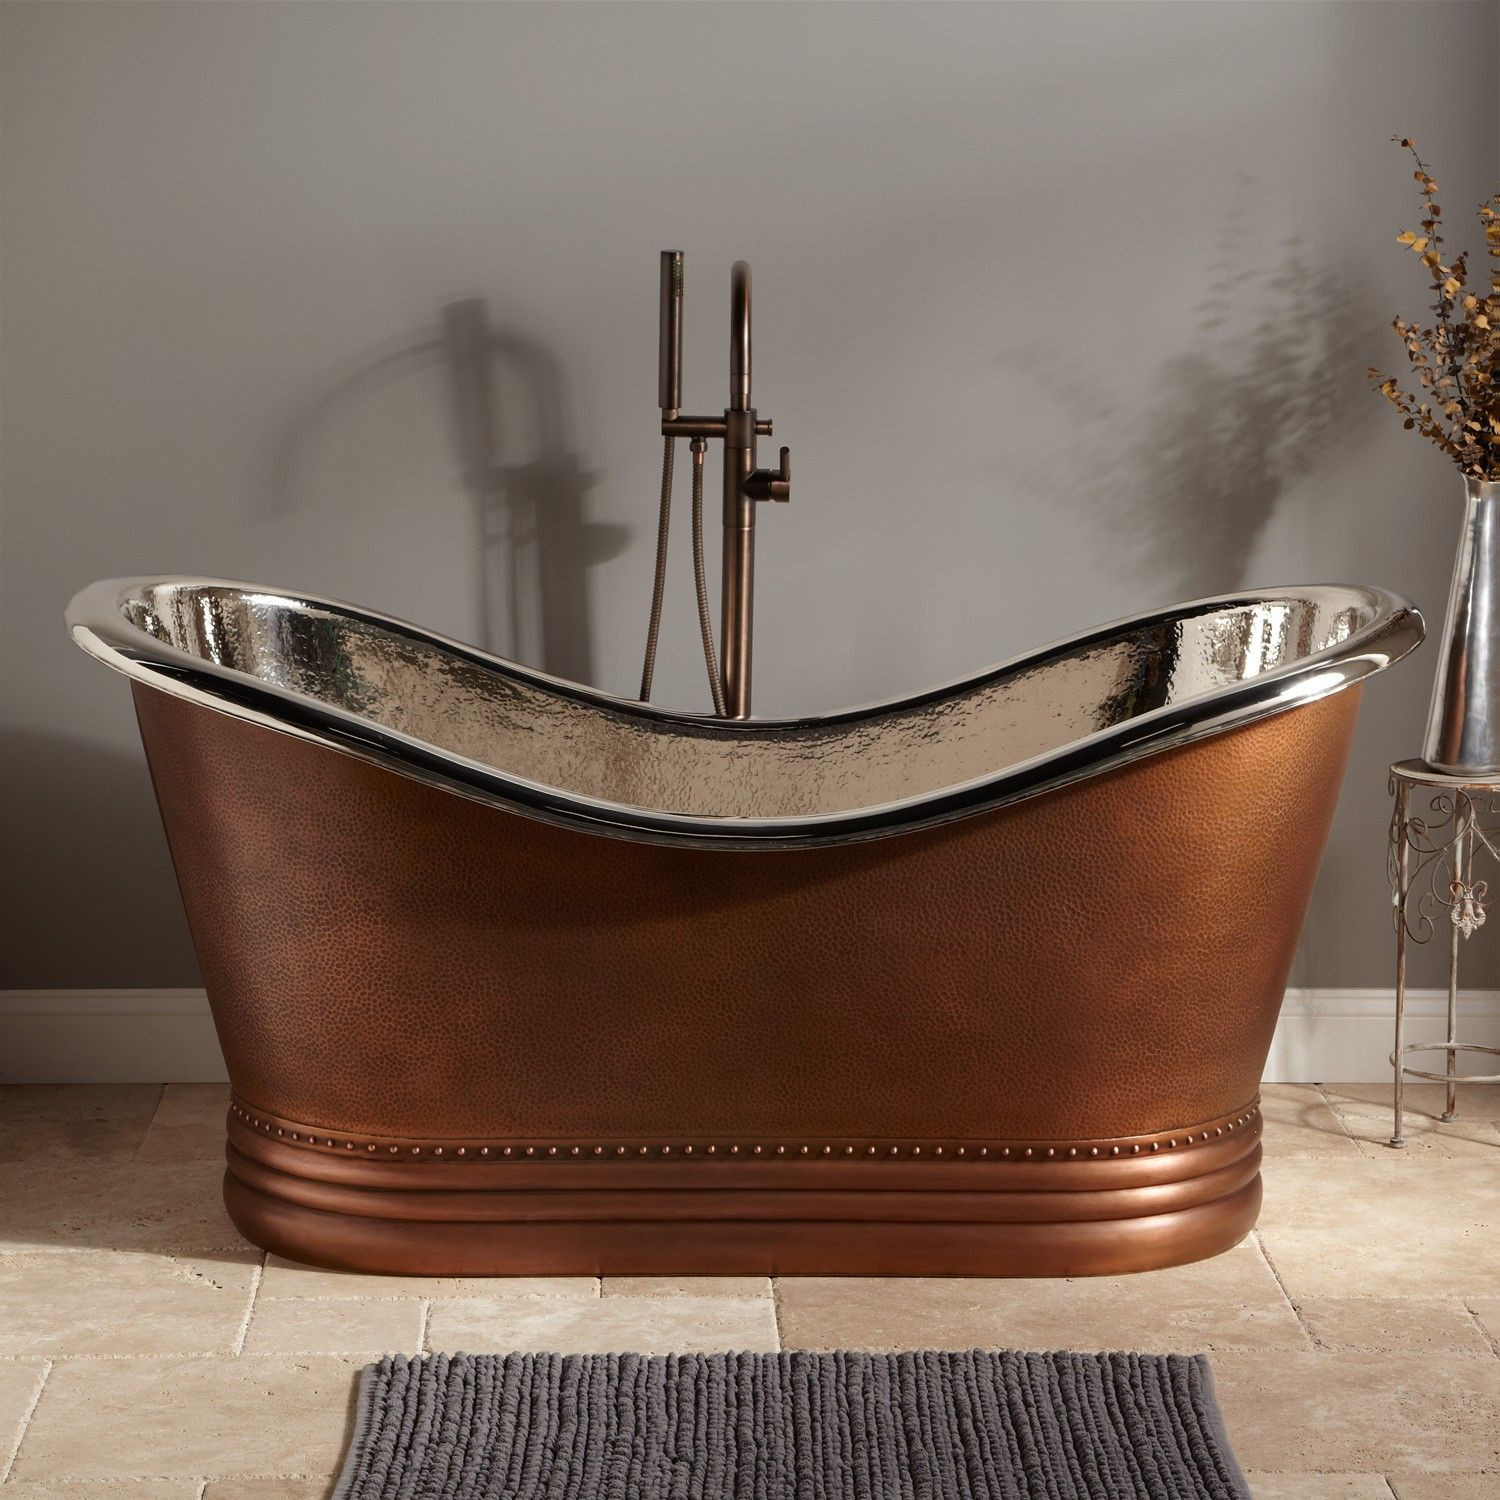 Paige Hammered Copper Double Slipper Tub Nickel Interior Copper Tubs Bathtubs Bathroom Better Price And Ni Slipper Tubs Copper Tub Copper Soaking Tub